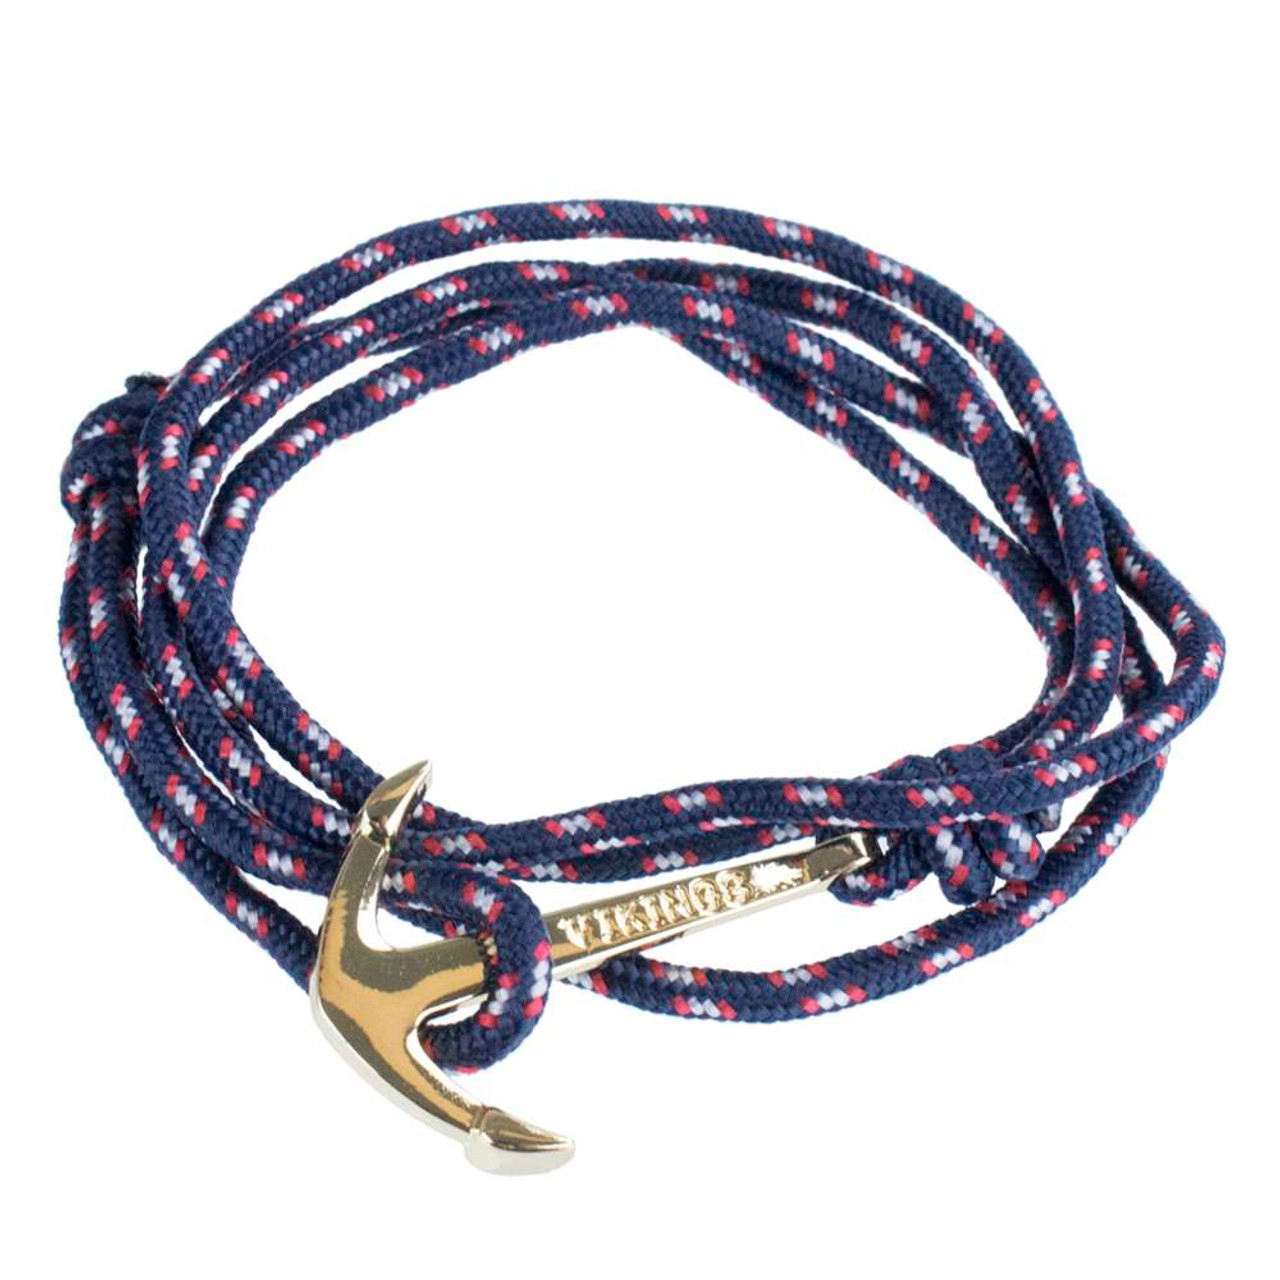 navy steel clasp with jewellery blue leather unique bracelet